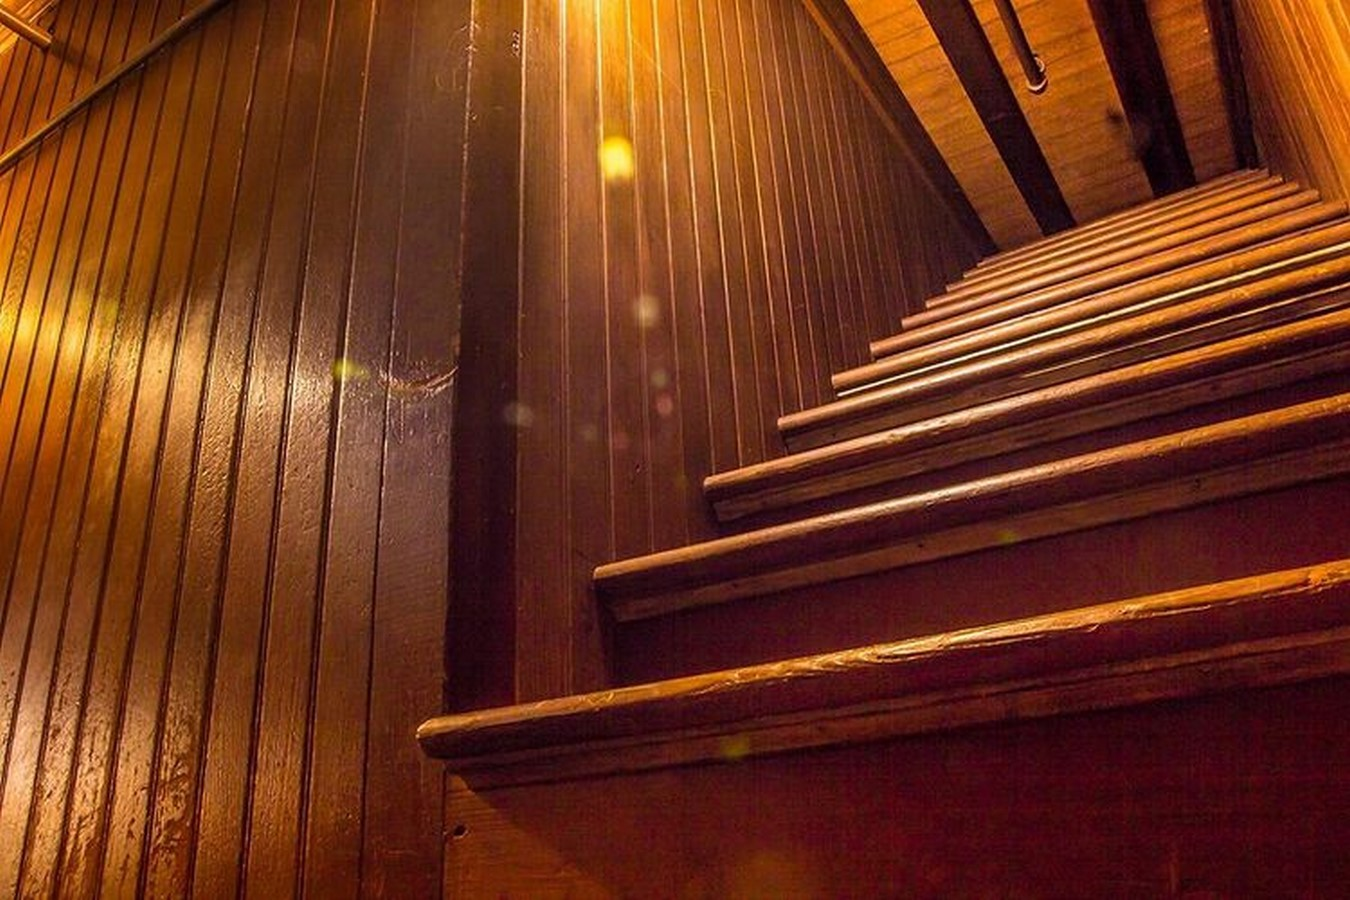 Winchester Mystery House, California, USA: Architectural Mystery - Sheet15